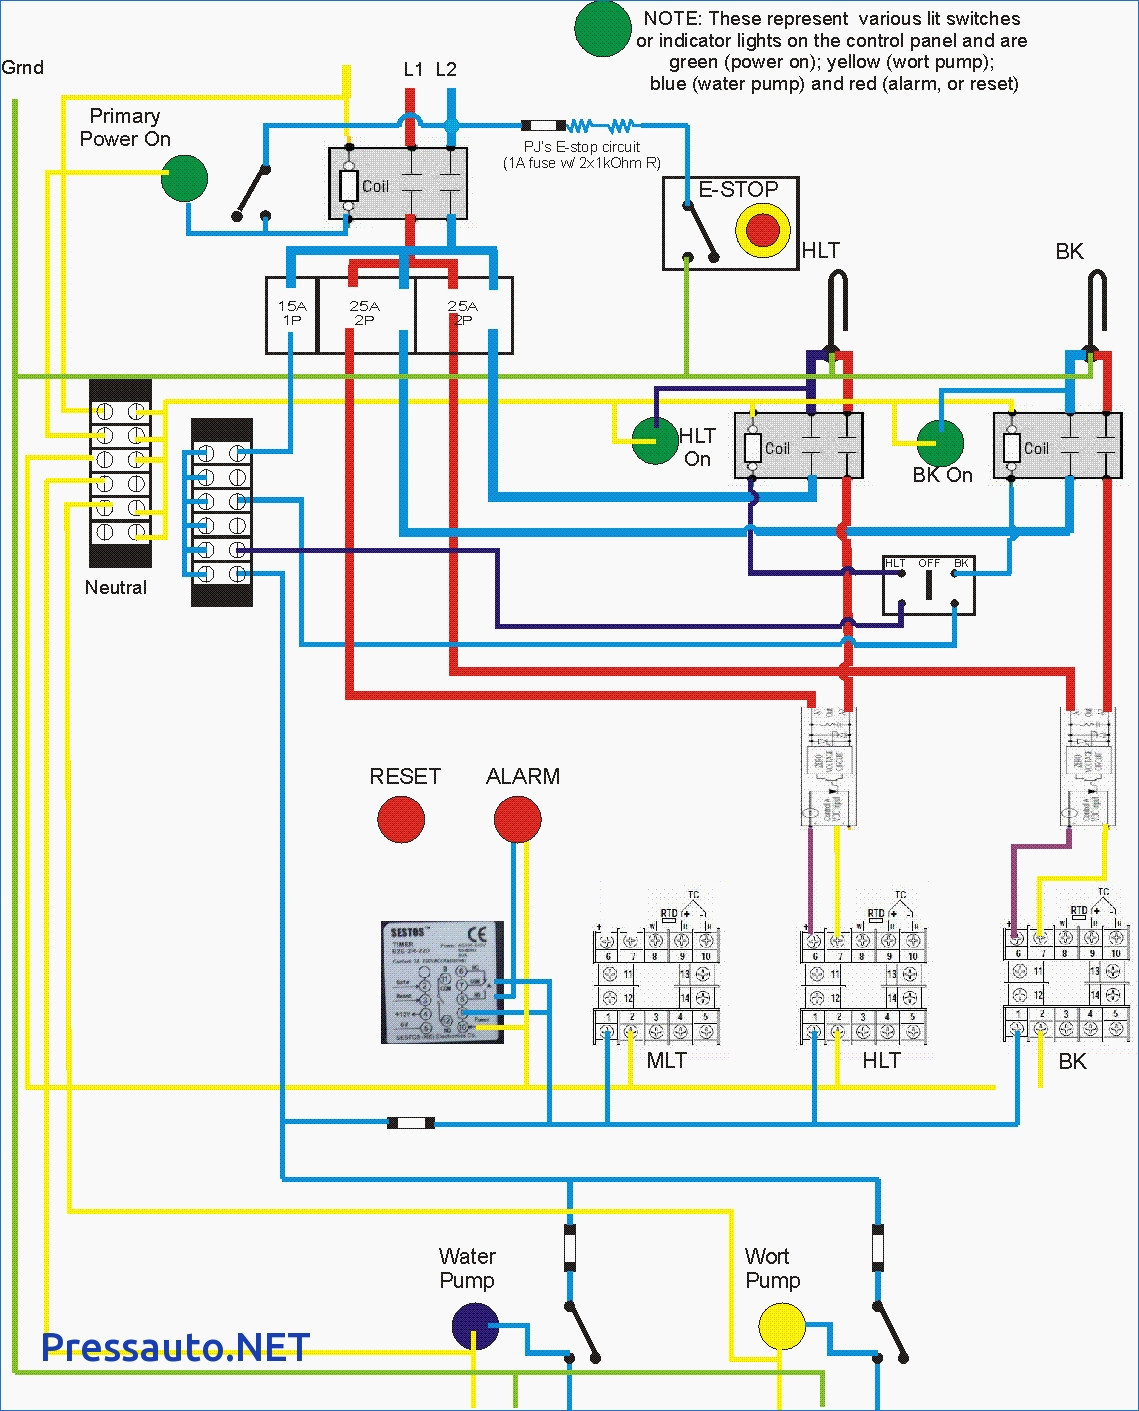 fire pump controller wiring diagram Download-Magnificent Sump Pump Control Panel Wiring Diagram Image Collection 13-b